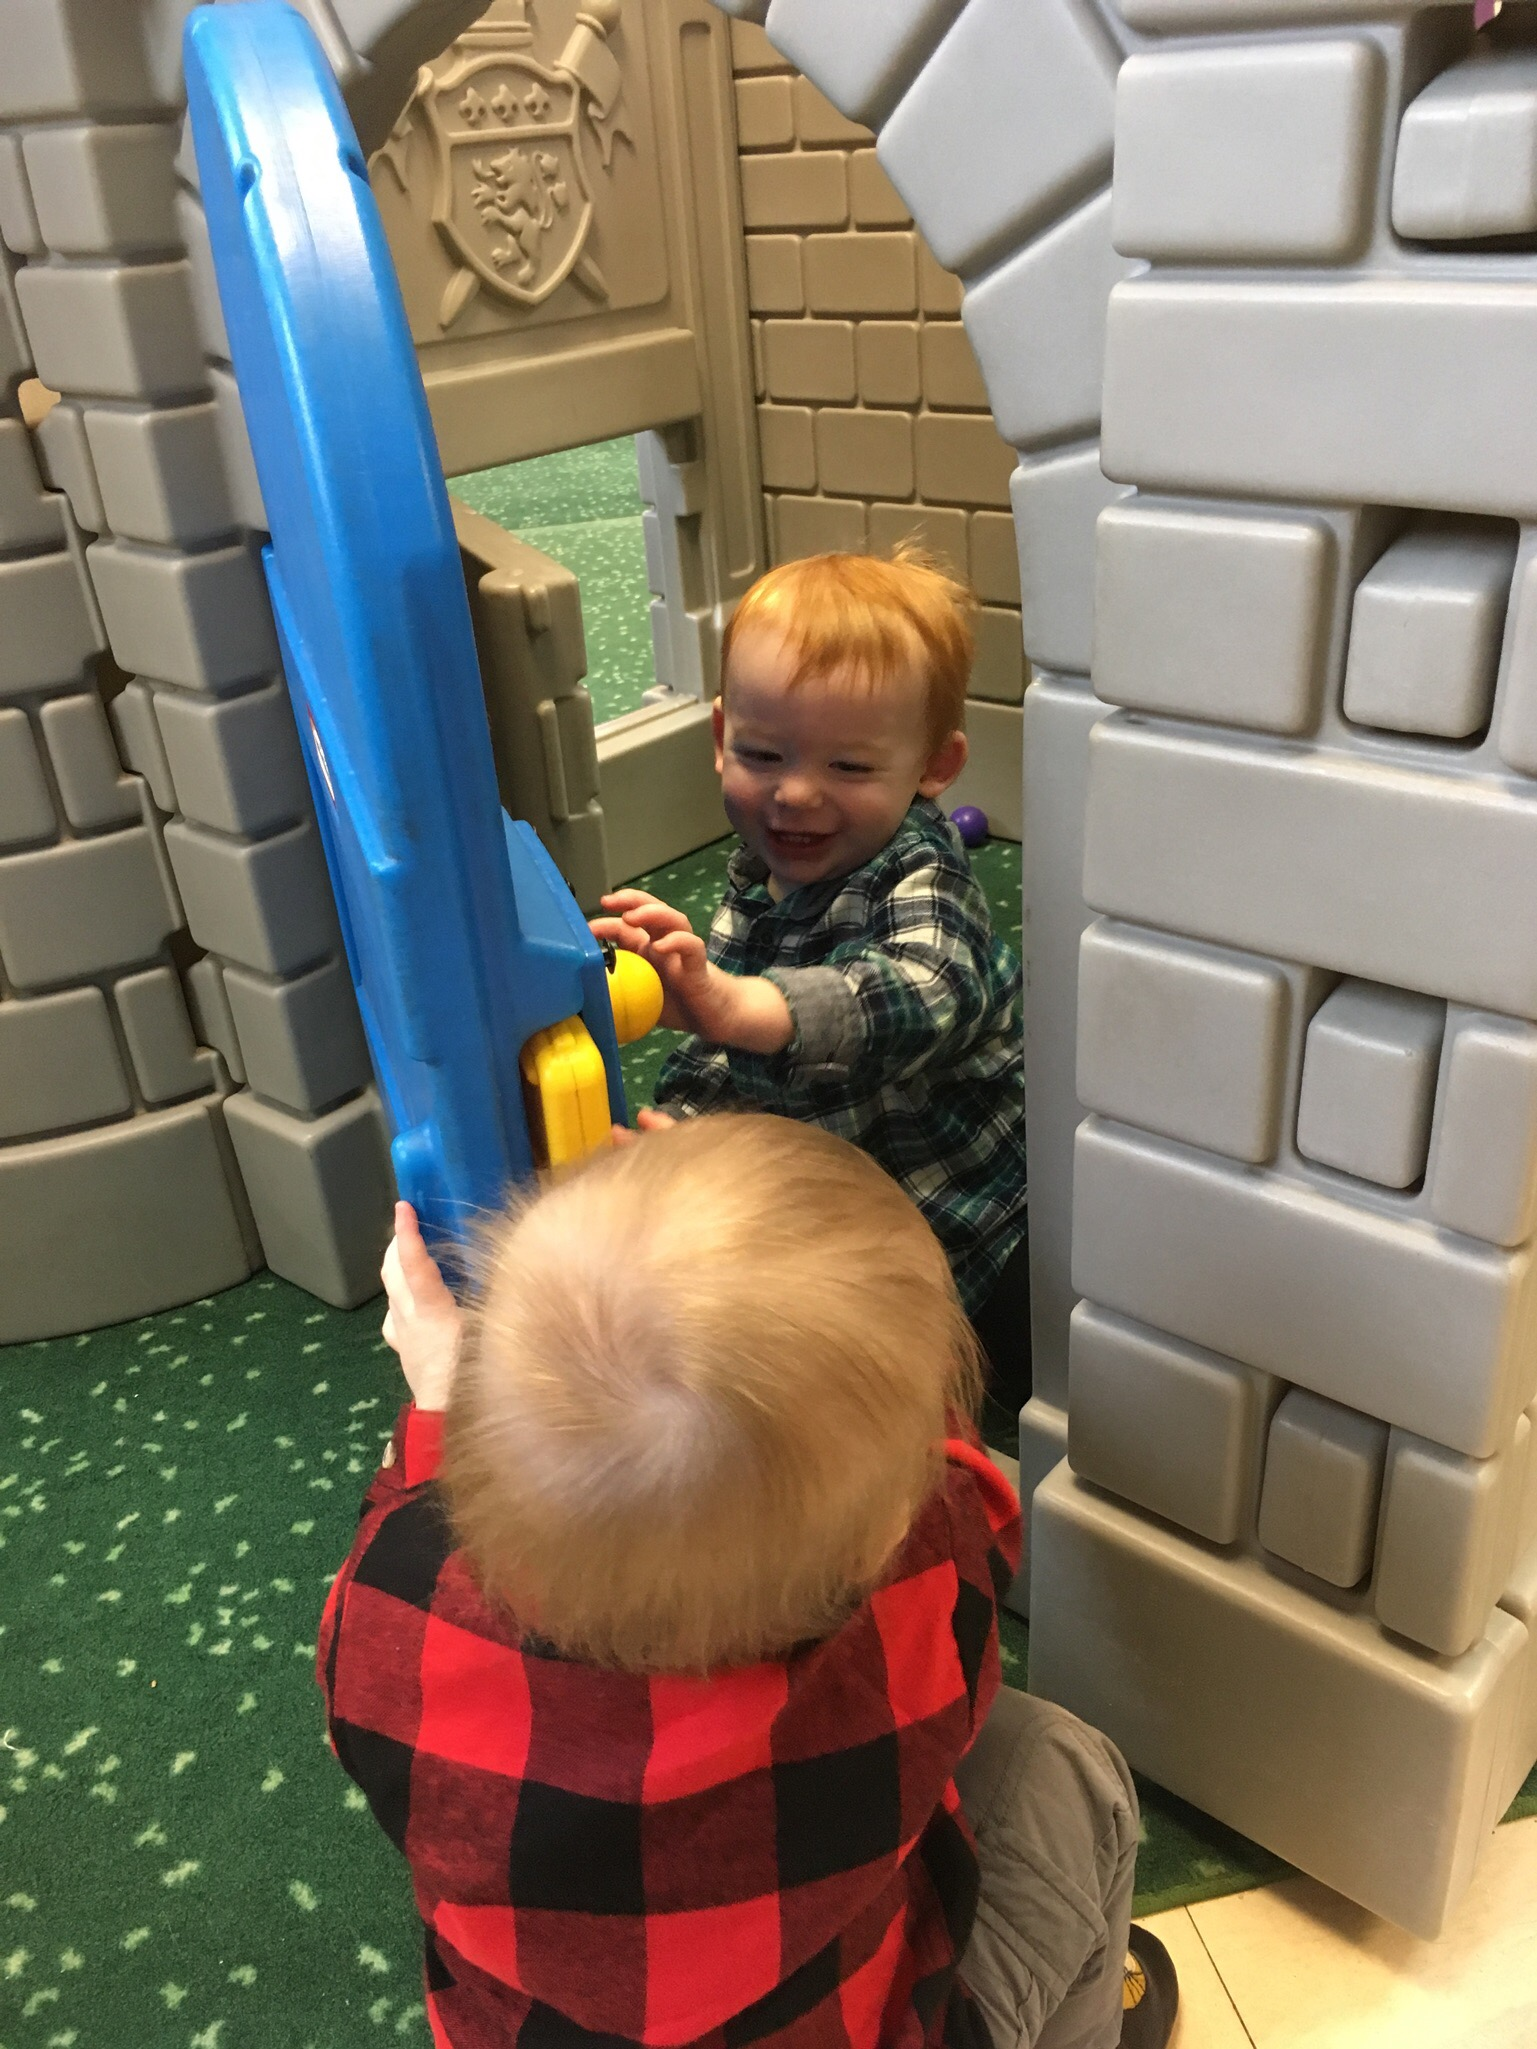 They love playing with doors! This door is at the Seesaw Center, a non-profit indoor play place near our house.